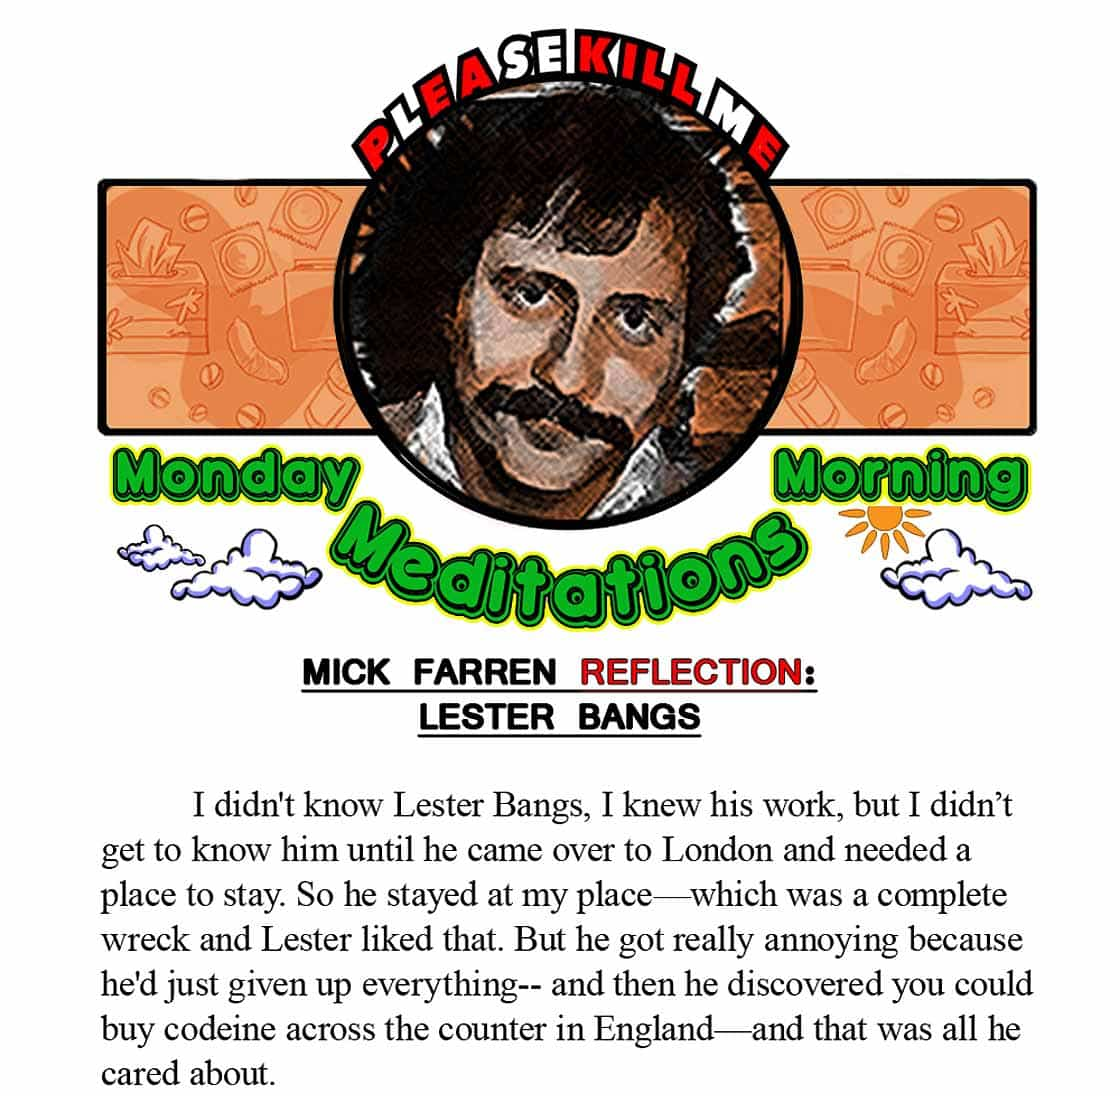 MICK FARREN/LESTER BANGS:            I didn't know Lester Bangs, I knew his work, but I didn't get to know him until he came over to London and needed a place to stay. So he stayed at my place—which was a complete wreck and Lester liked that. But he got really annoying because he'd just given up everything-- and then he discovered you could buy codeine across the counter in England—and that was all he cared about.              I liked Lester Bangs actually, but he could be real  tedious.  Lester could never get laid, cause he always had to open his fucking mouth and blow it, ya know? Lester would moan all night  about he wanted to get laid and you'd set him up with some broad, who was willing to fuck him cause she'd read his stuff-- but then he'd start talking-- and that was the end of any sexual connection.              Lester was kinda peculiar about women cause he was brought up weird. I think he put an awful lot of not-getting-laid into his writing. I think he sublimated an awful lot into this  bizarro fucking rock criticism. I mean, he dressed like a wino, with that fucking moustache, and I was like, 'Come on Lester,  if you wanna get laid, shave the fucking moustache off, lose 20 pounds and get yourself a decent wardrobe!' I mean gimme a fucking break-- he hadn't just got back from Vietnam! But he dressed like it!             On the other hand, he was a hellacious writer.